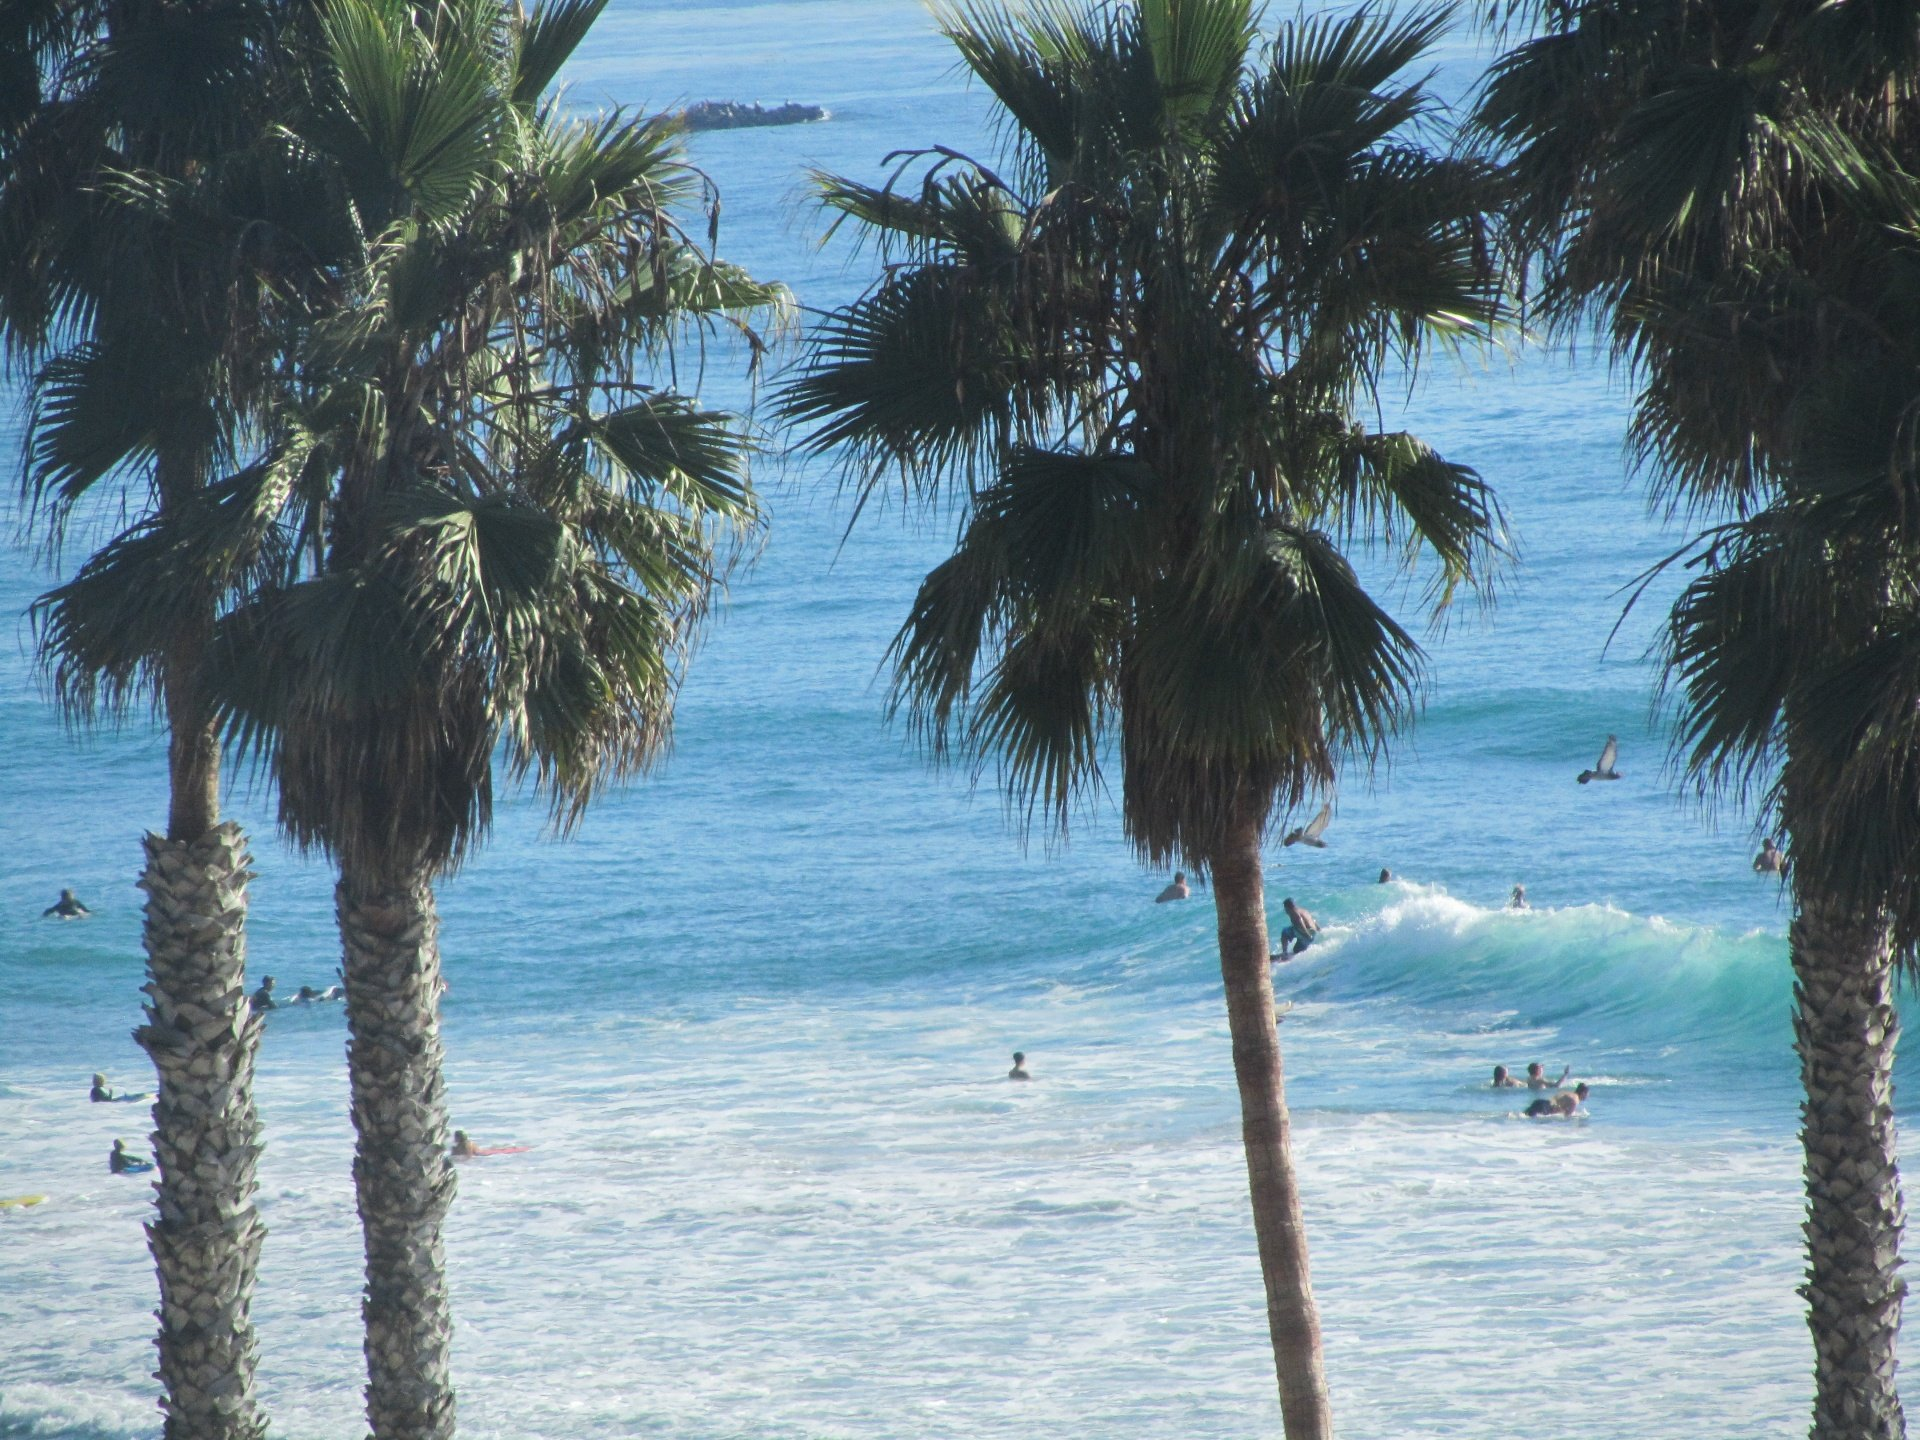 Gregory Borne's photo of T Street (Trafalgar Street)